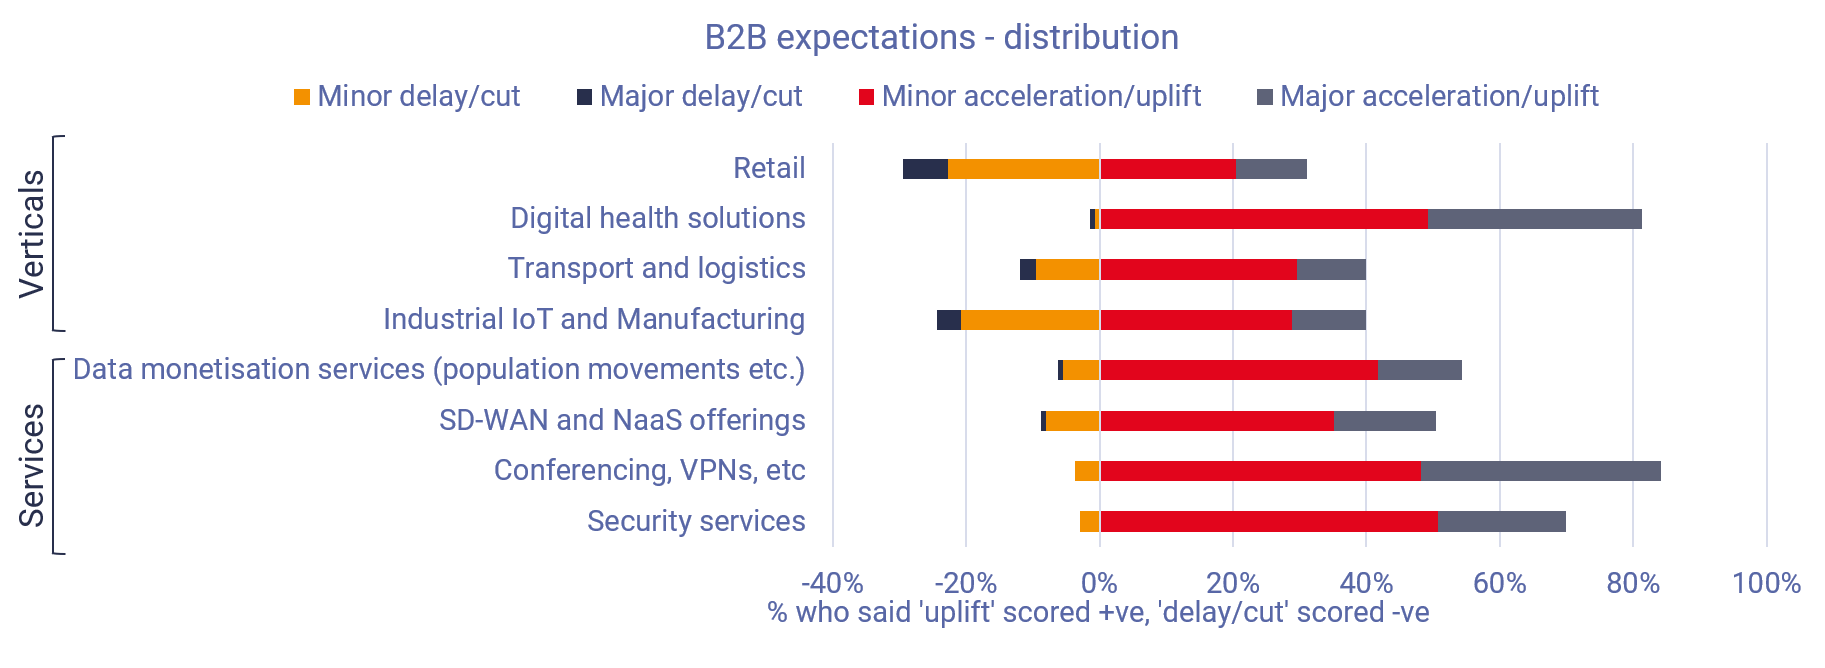 COVID-19 impacts on enterprise services and verticals (chart)